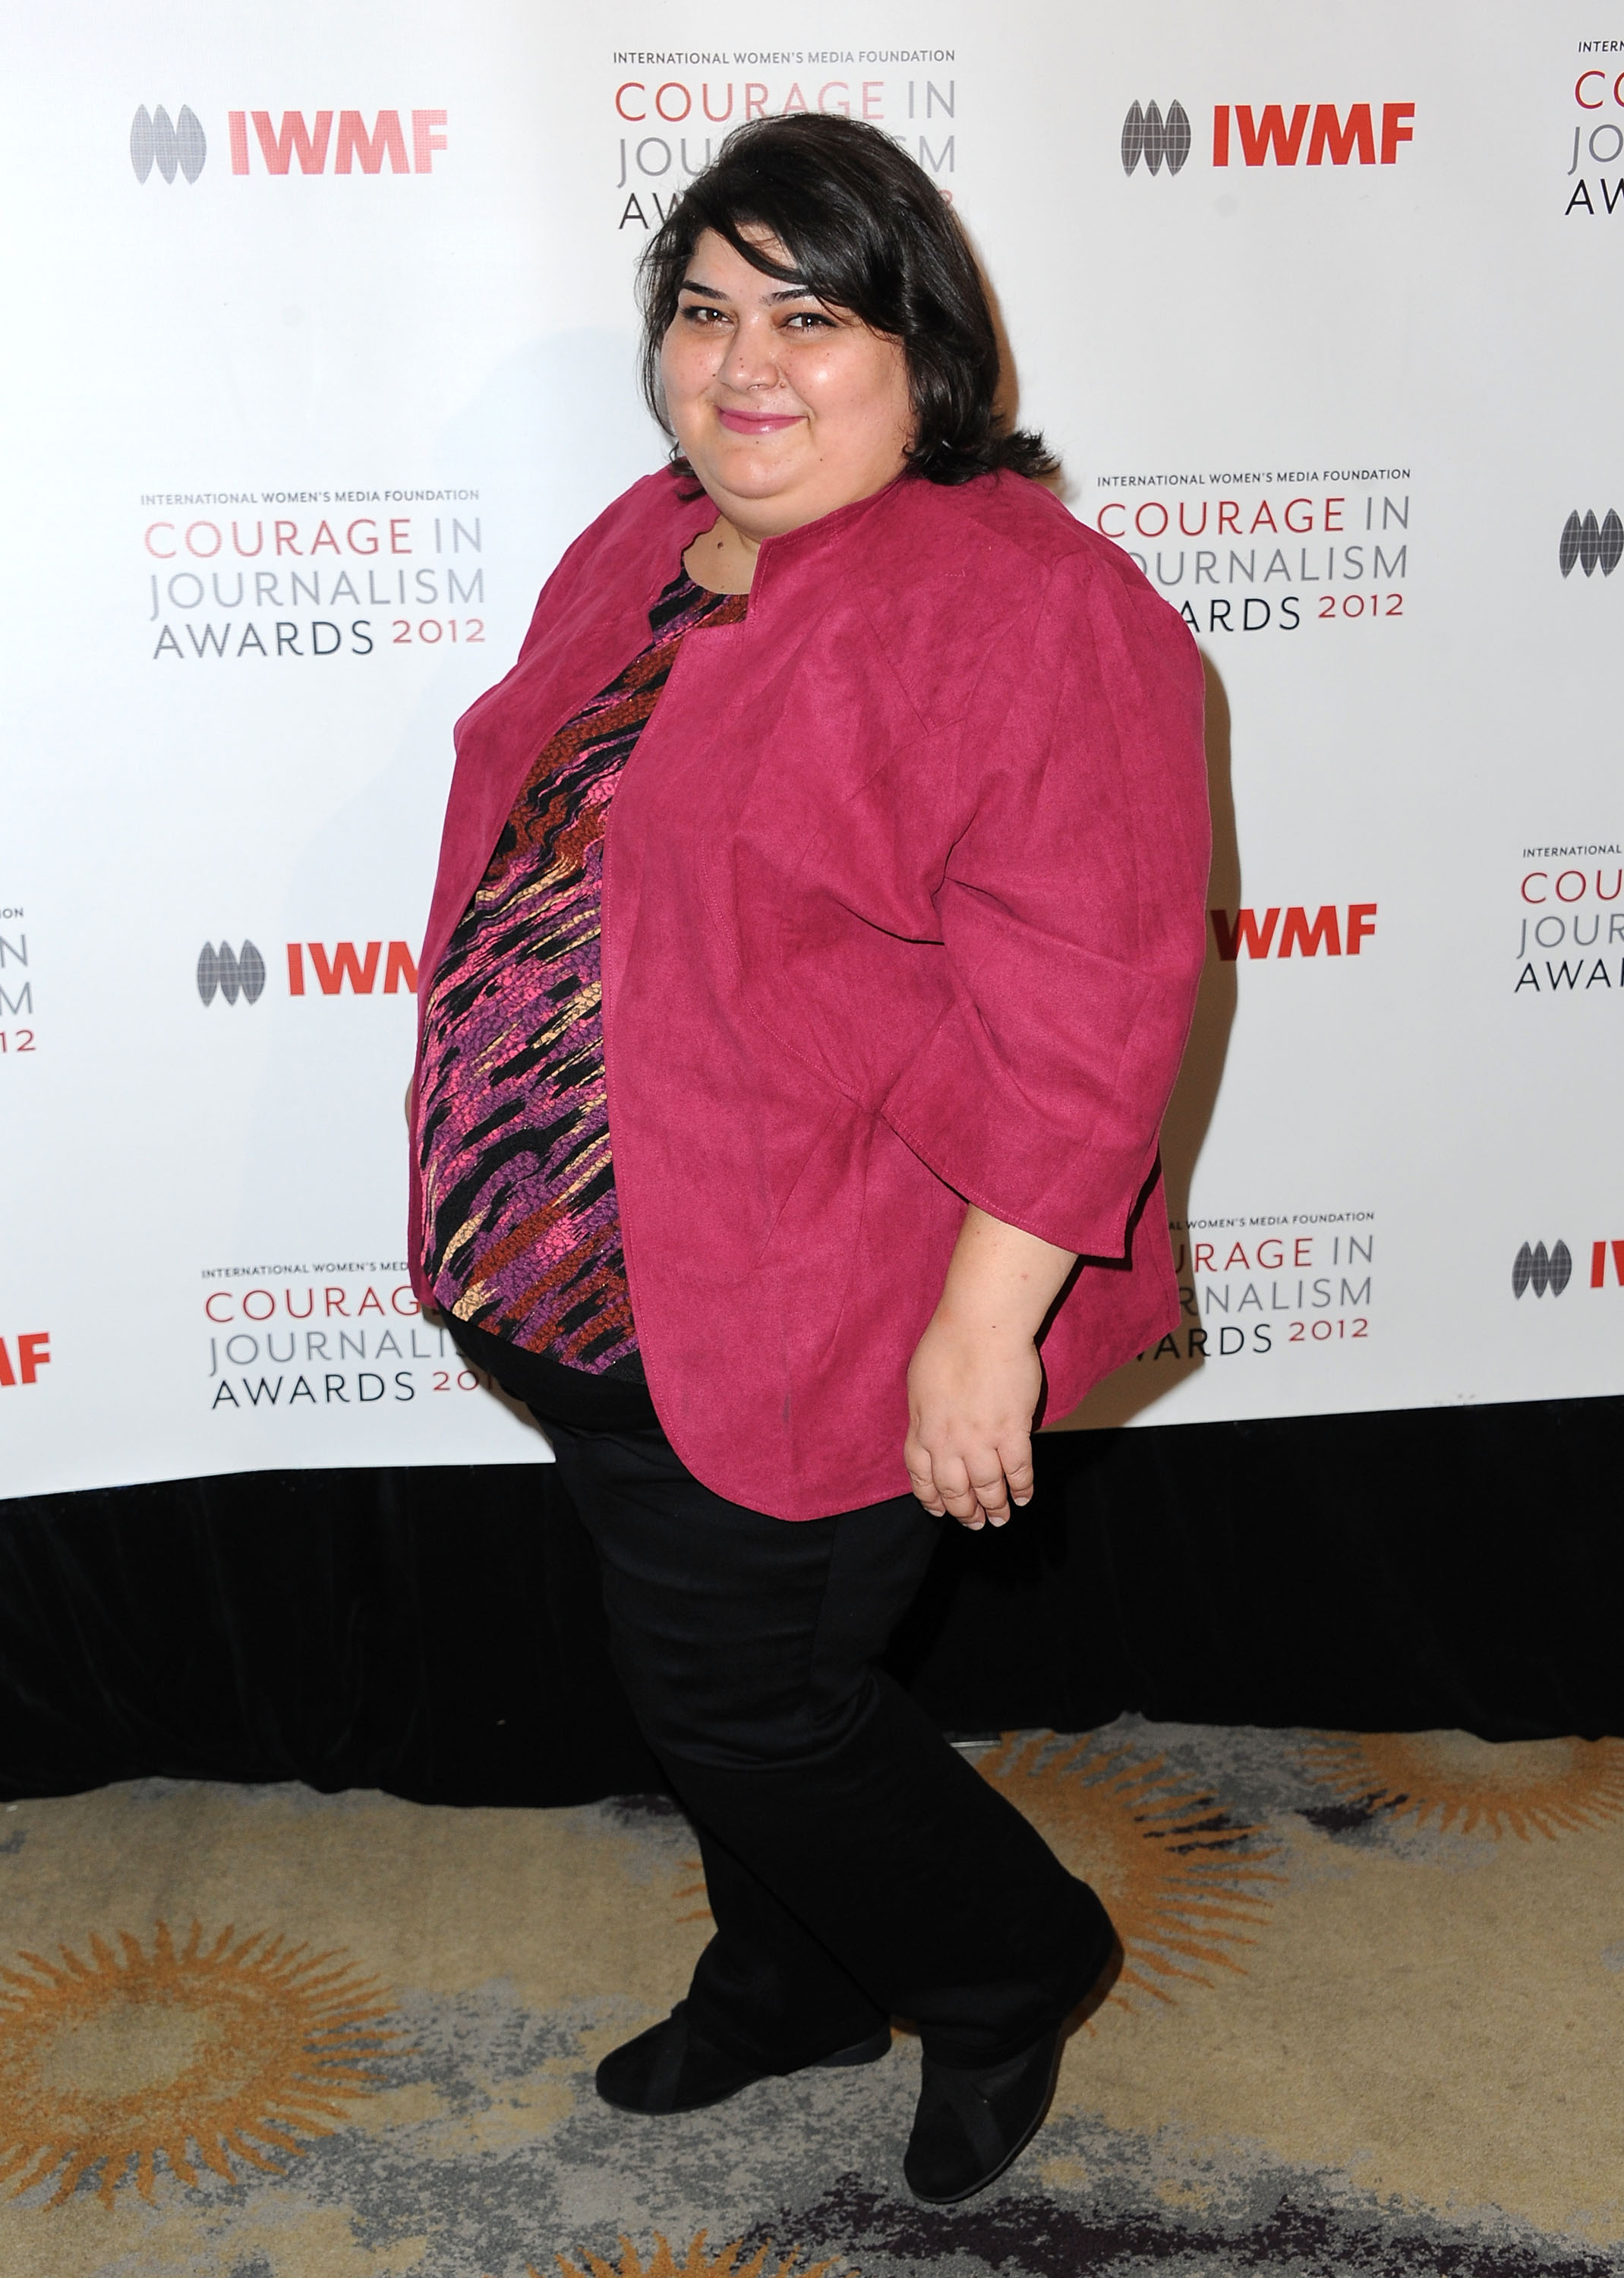 Khadija Ismayilova arrives at the 2012 Courage in Journalism Awards hosted by the International Women's Media Foundation held at the Beverly Hills Hotel on October 29, 2012 in Beverly Hills, California.